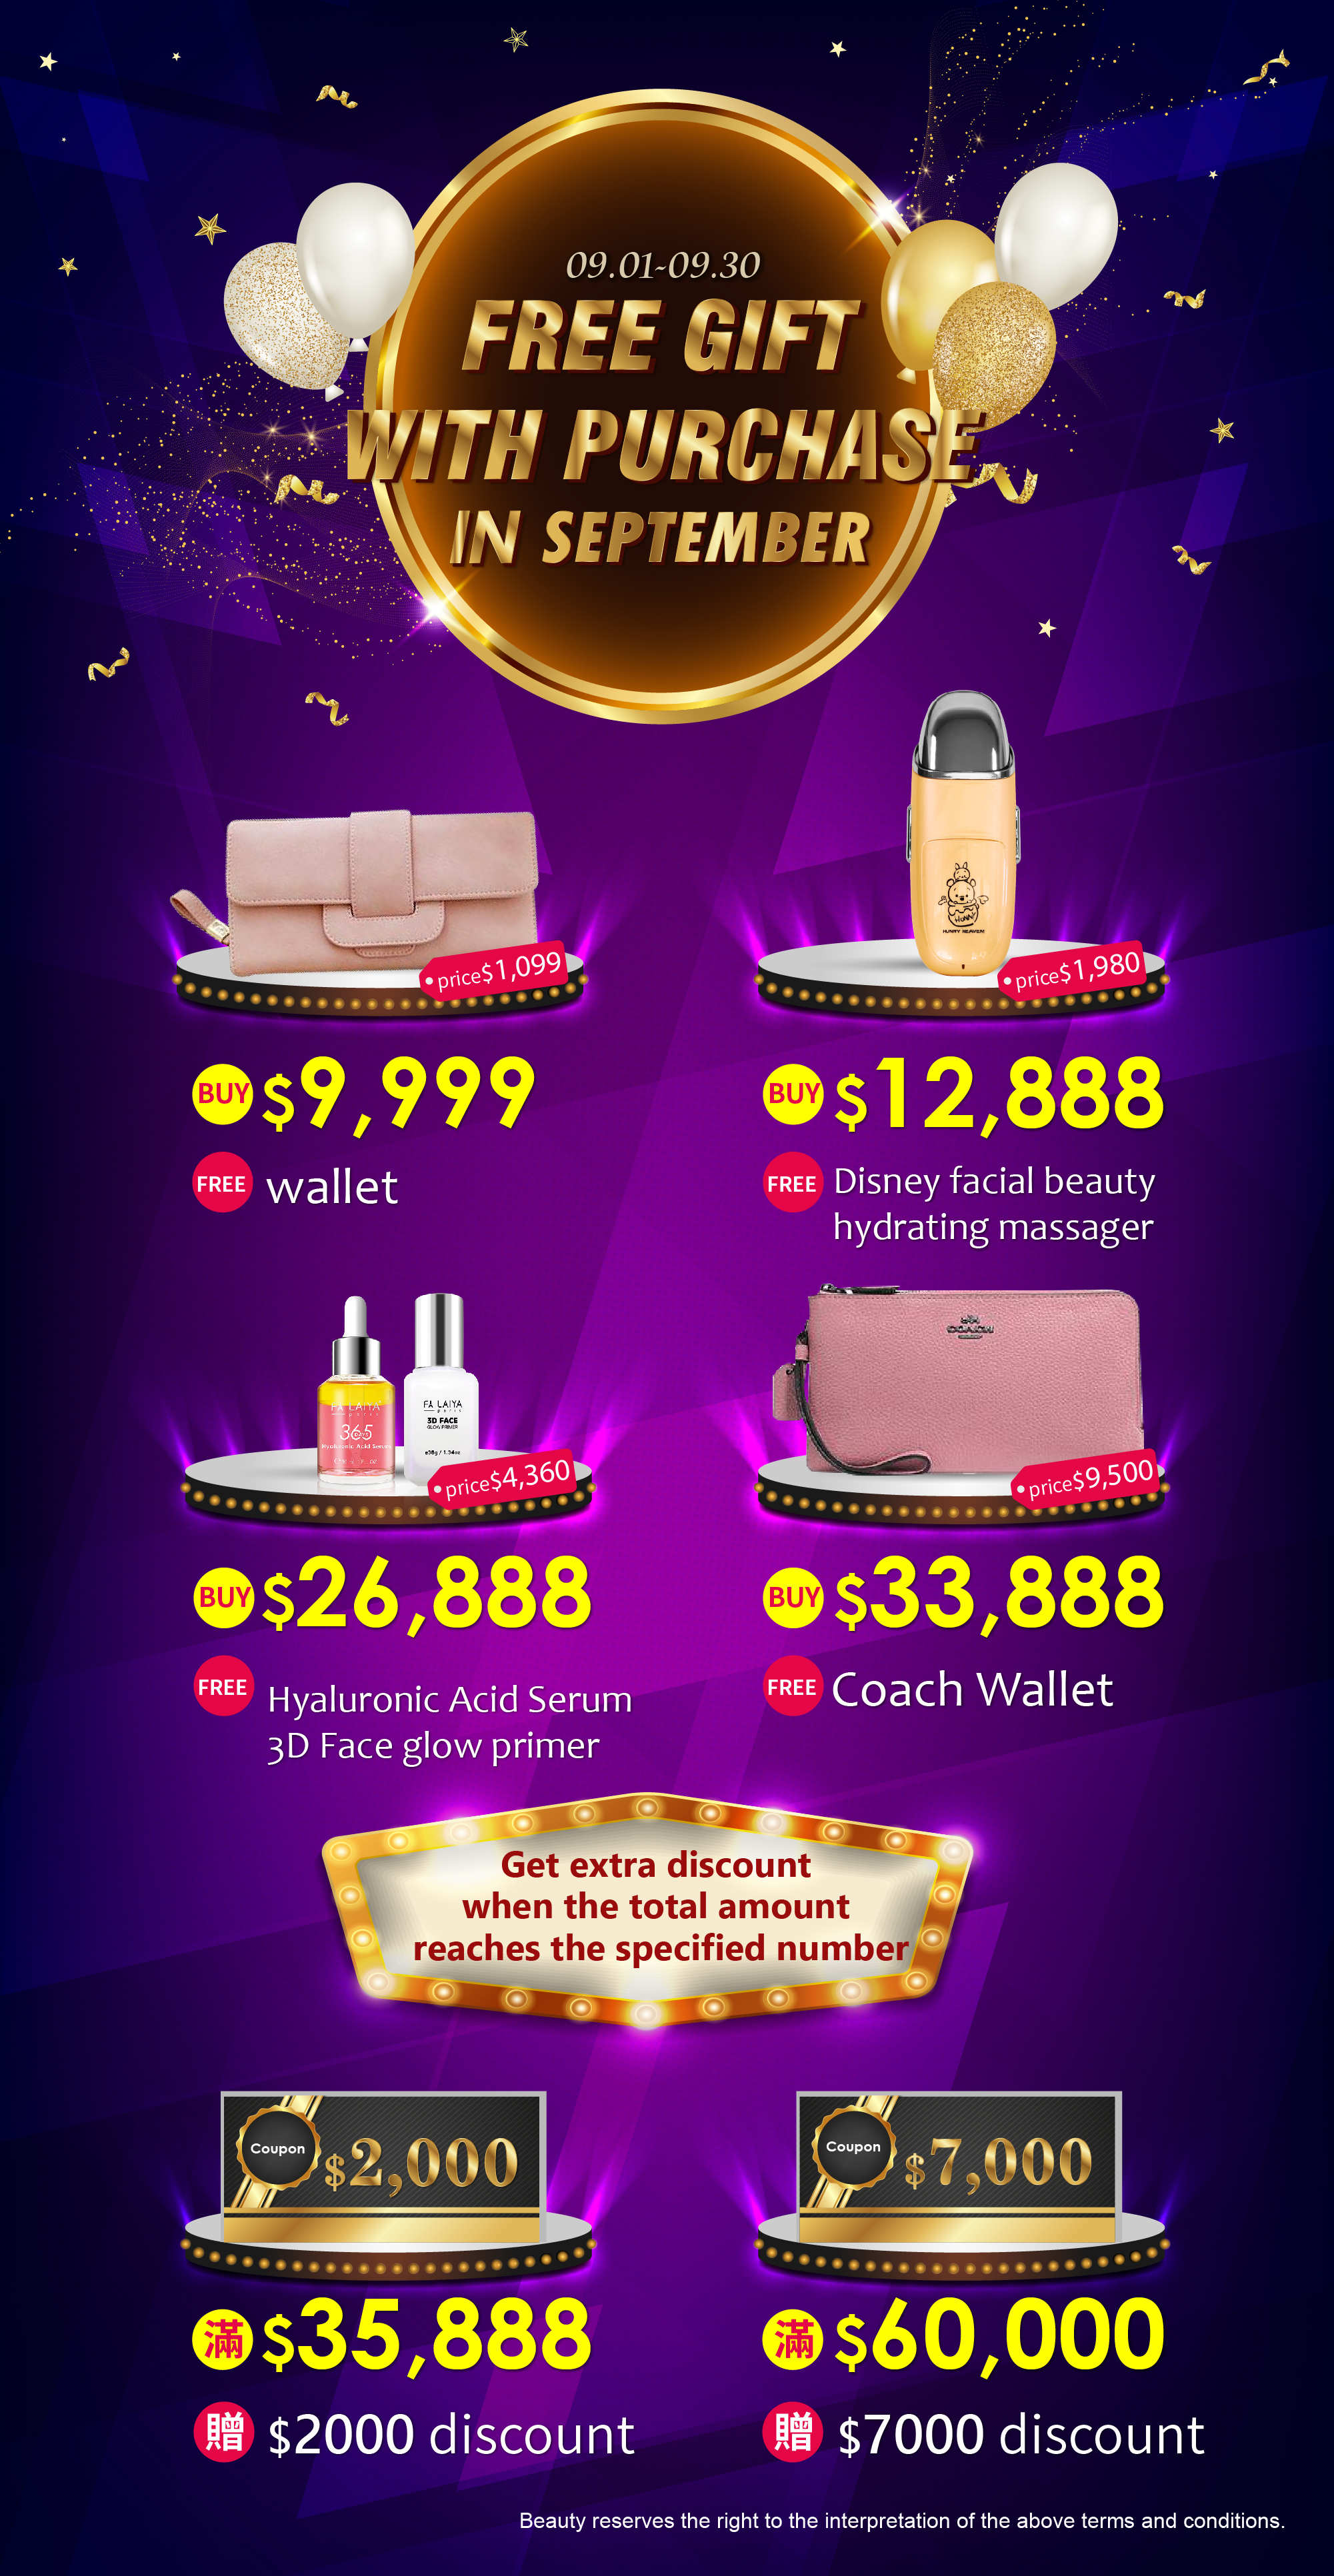 Free Gift With Purchase in September EDM-01.jpg